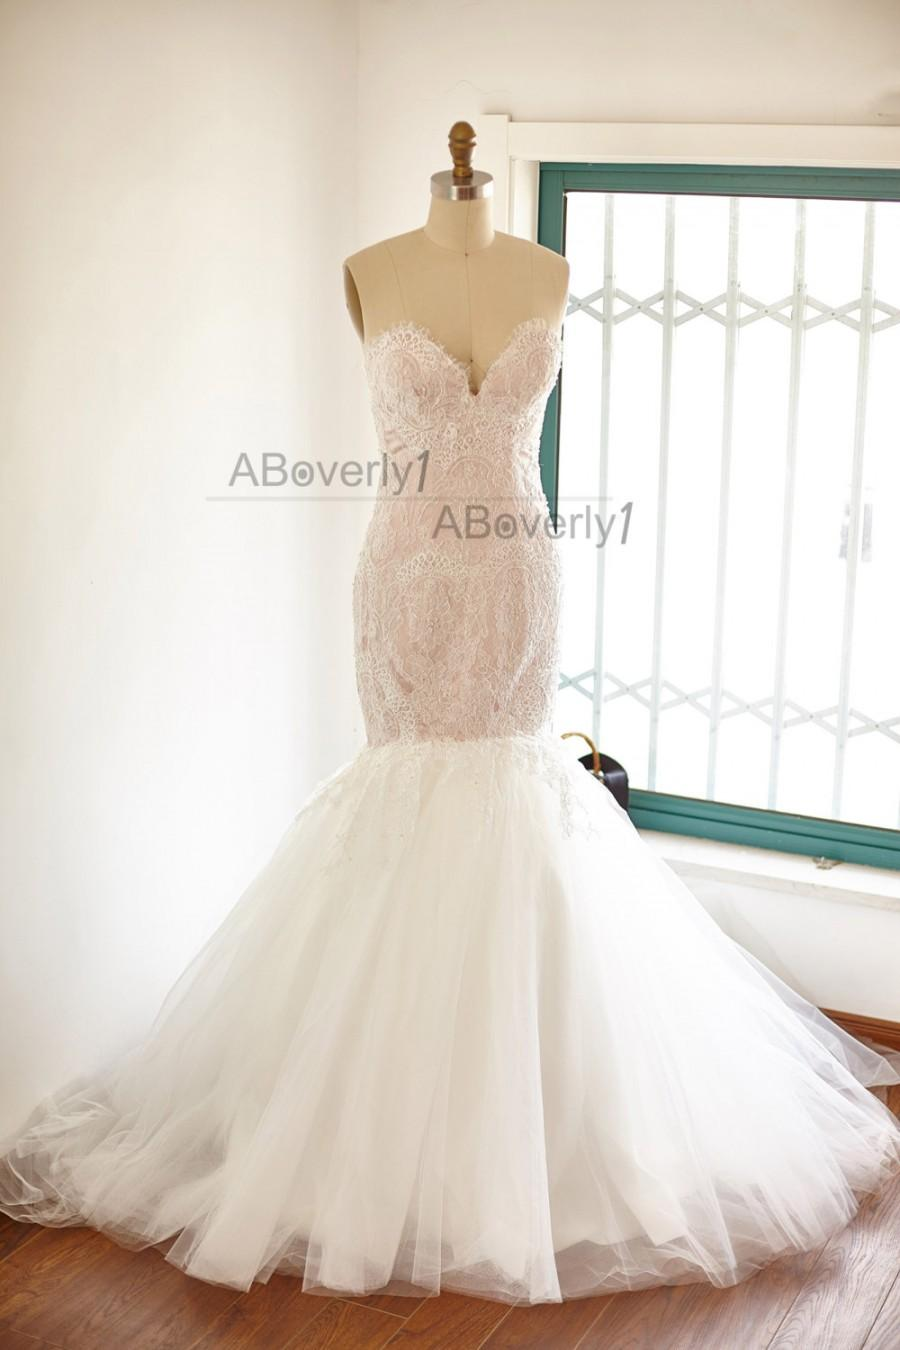 Mariage - Beaded Mermaid Lace Tulle Wedding Dress Bridal Gown Blush Pink Lining with Sweetheart Neckline/Long Train